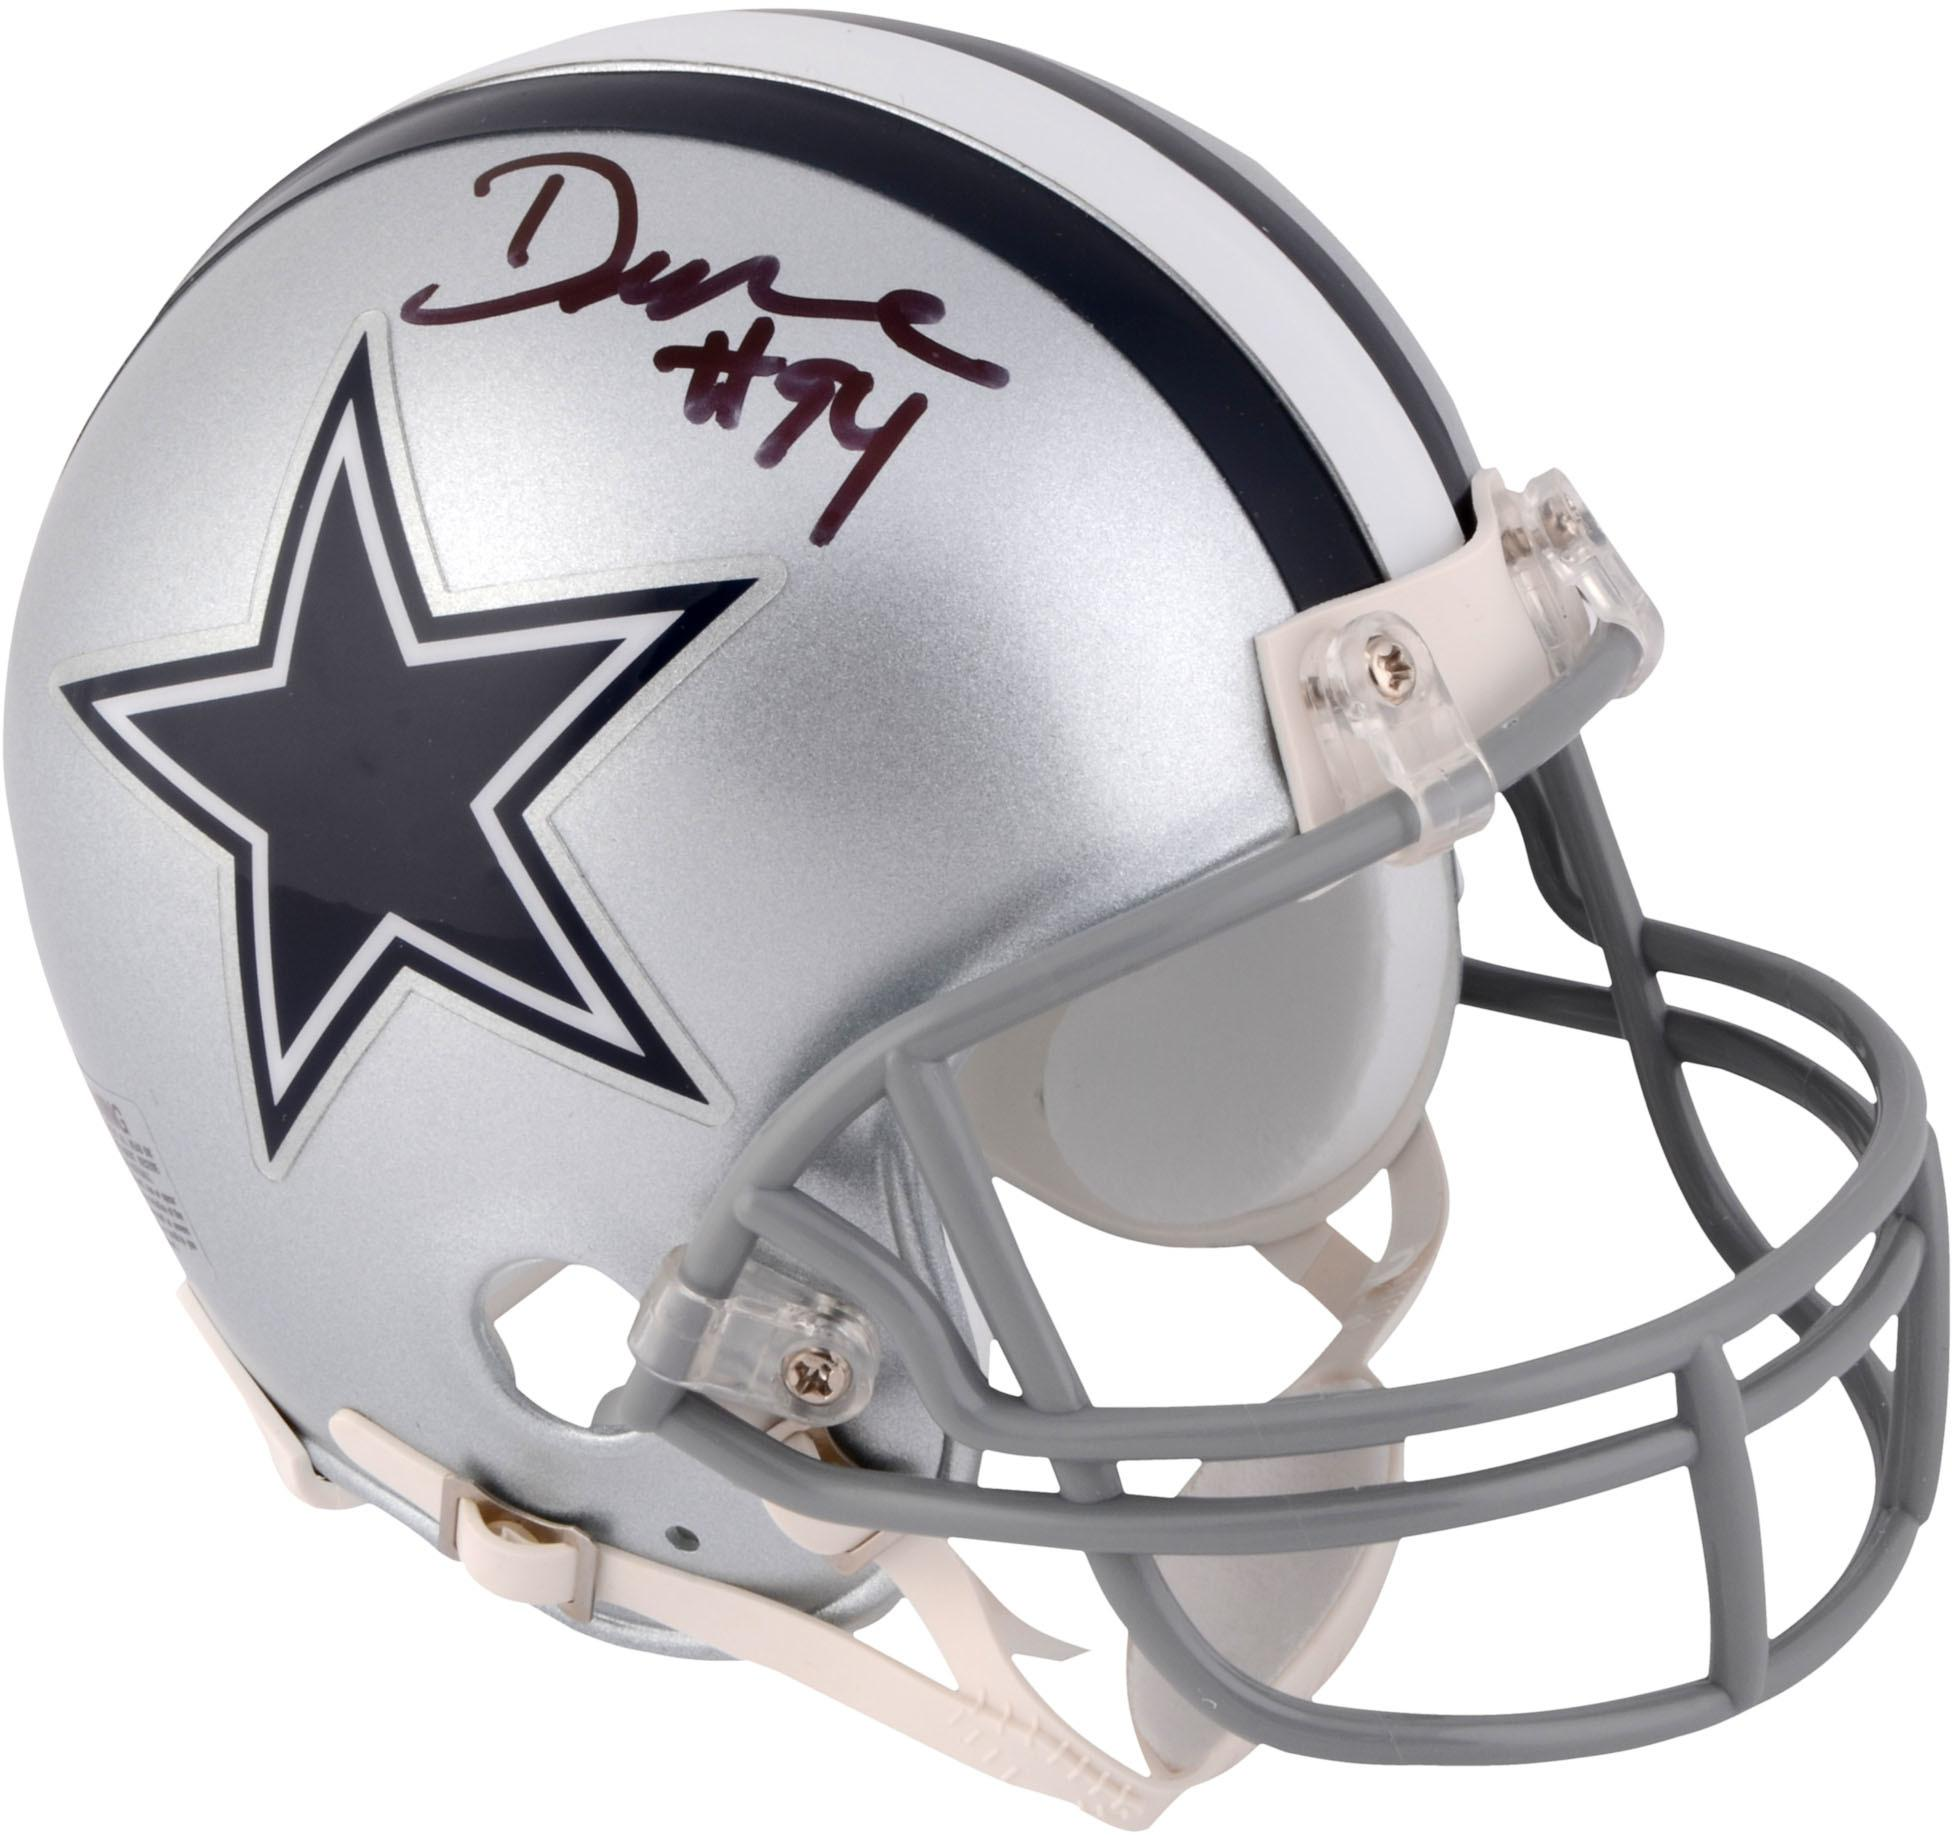 DeMarcus Ware Dallas Cowboys Autographed Riddell Mini Helmet - Fanatics Authentic Certified